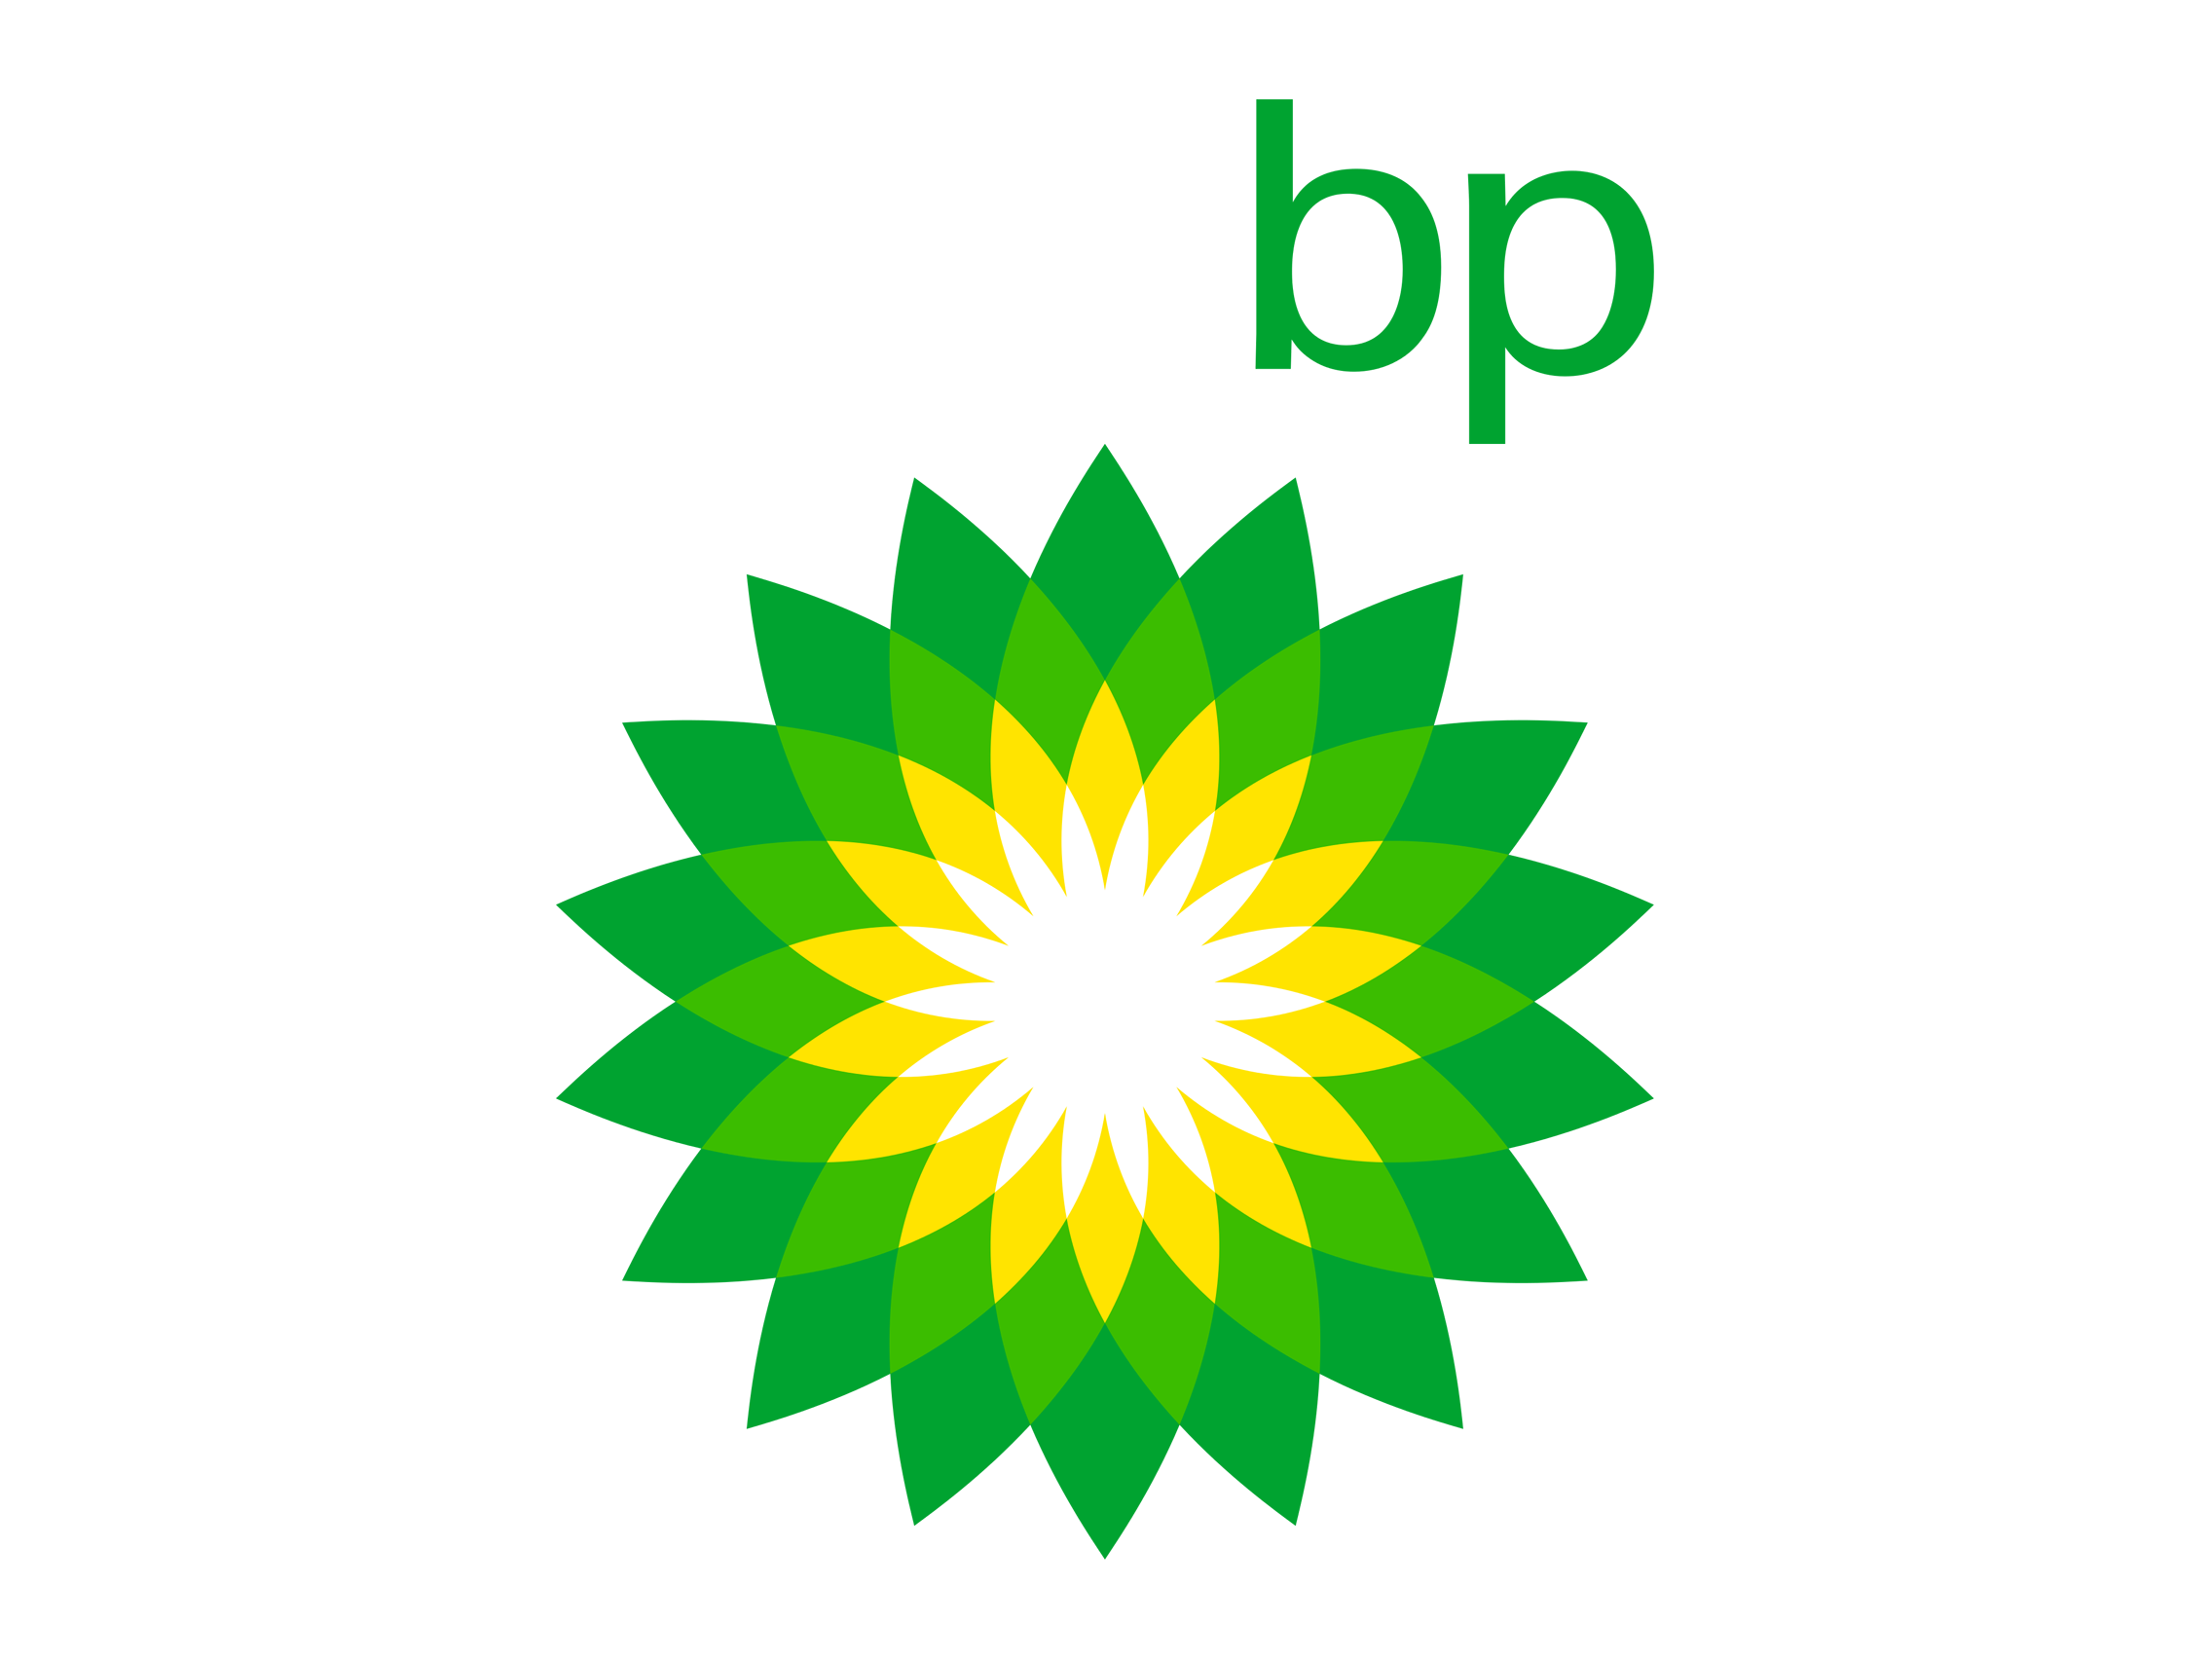 BP logotype Wallpaper